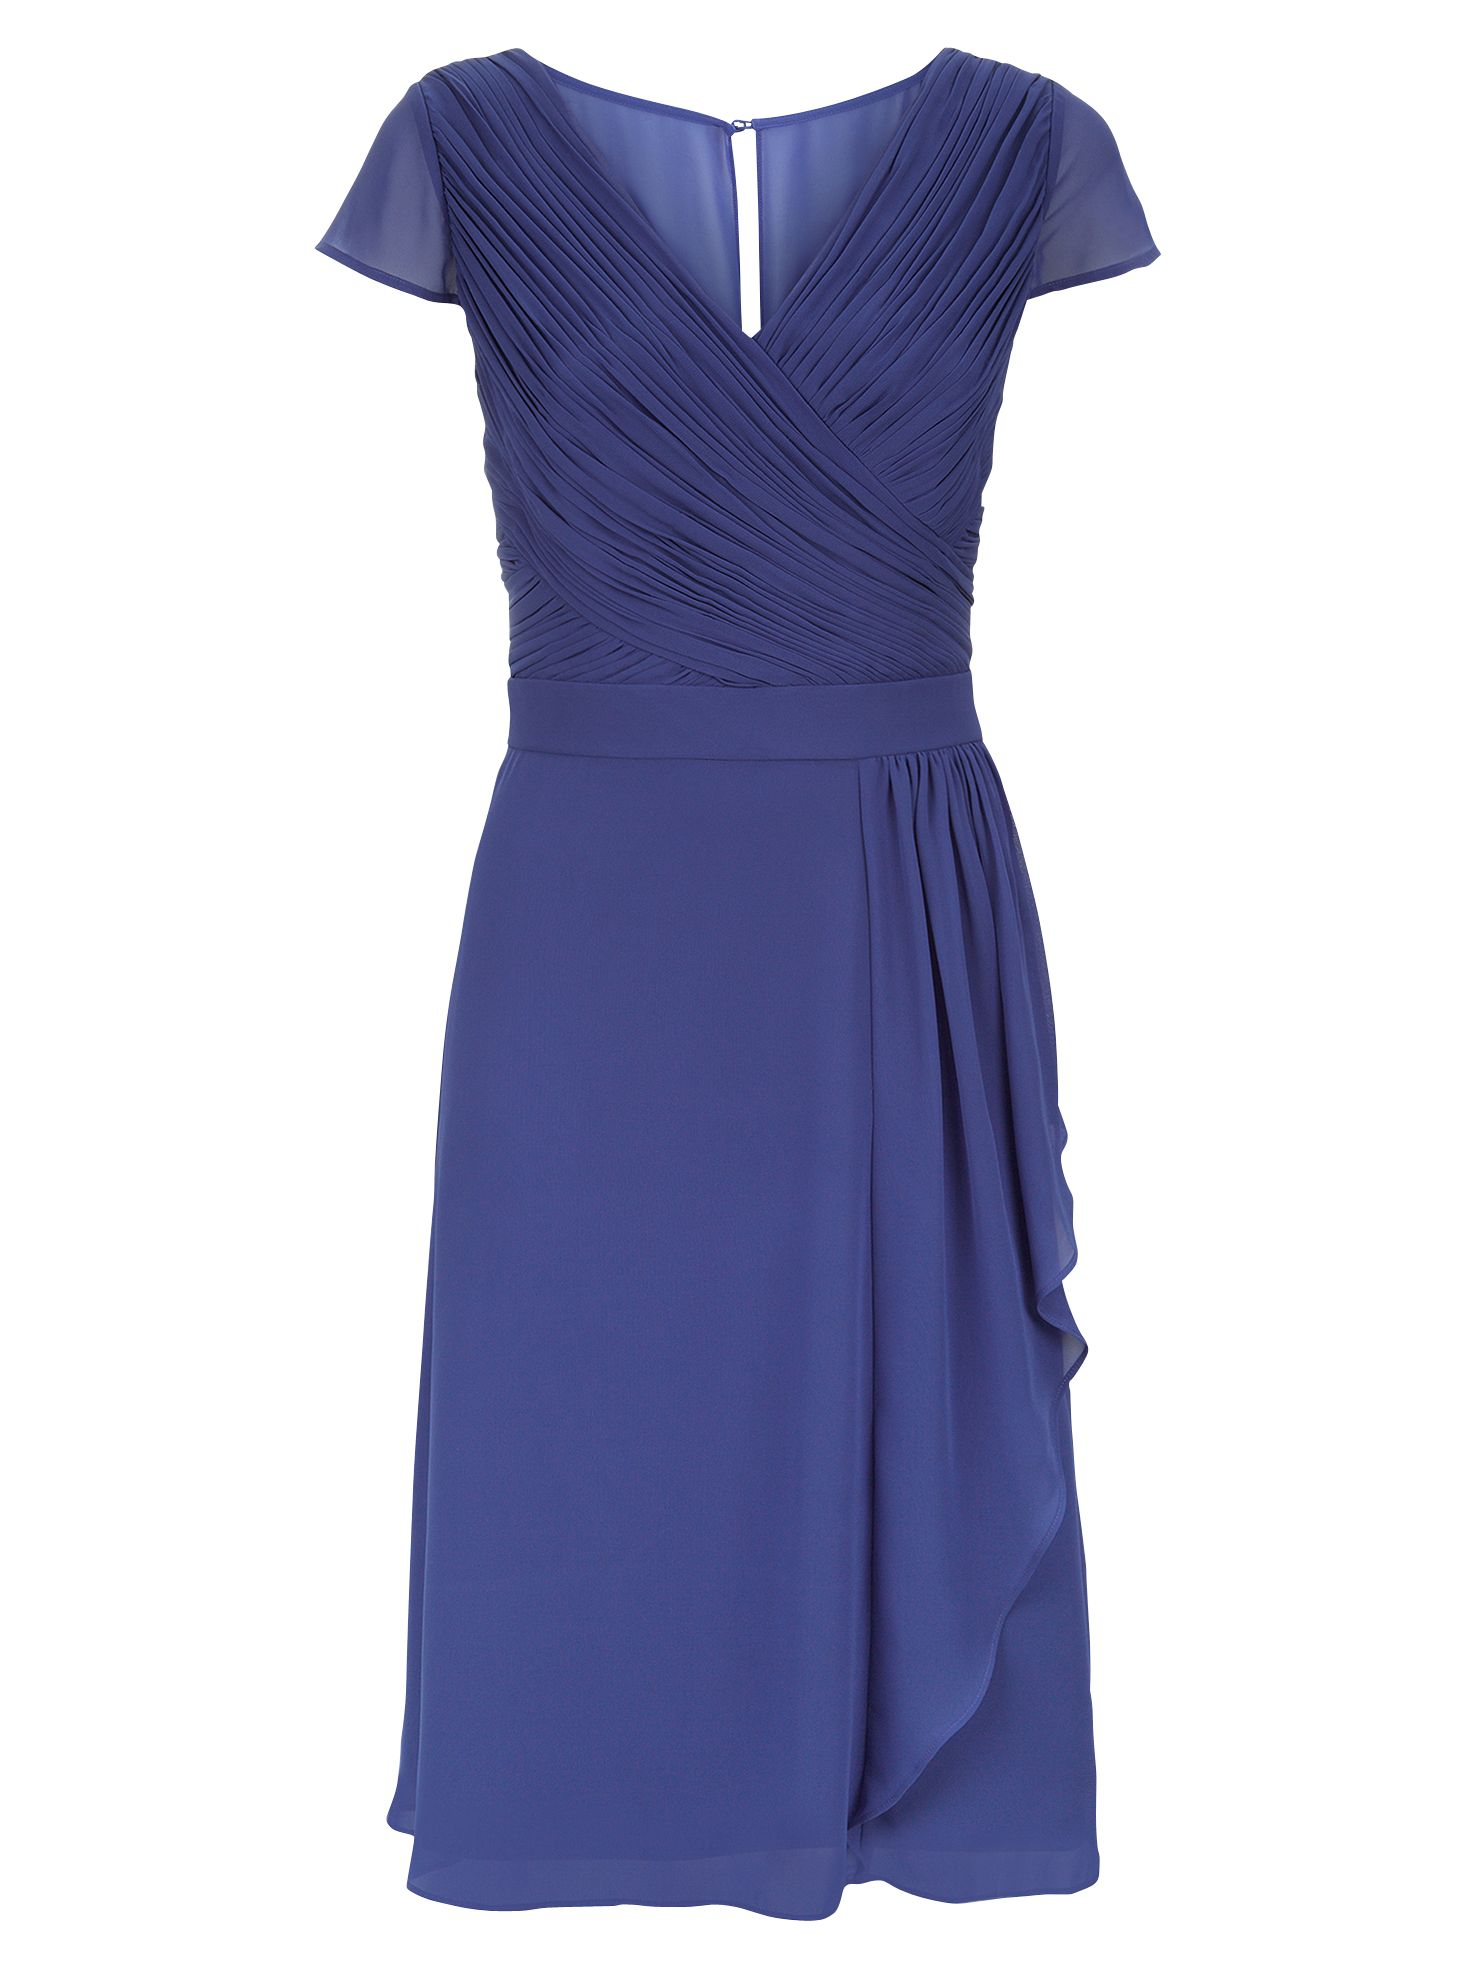 kaliko waterfall prom dress mid blue, kaliko, waterfall, prom, dress, mid, blue, 20|12|8|10|16, women, plus size, womens dresses, special offers, womenswear offers, latest reductions, womens dresses offers, 1872861